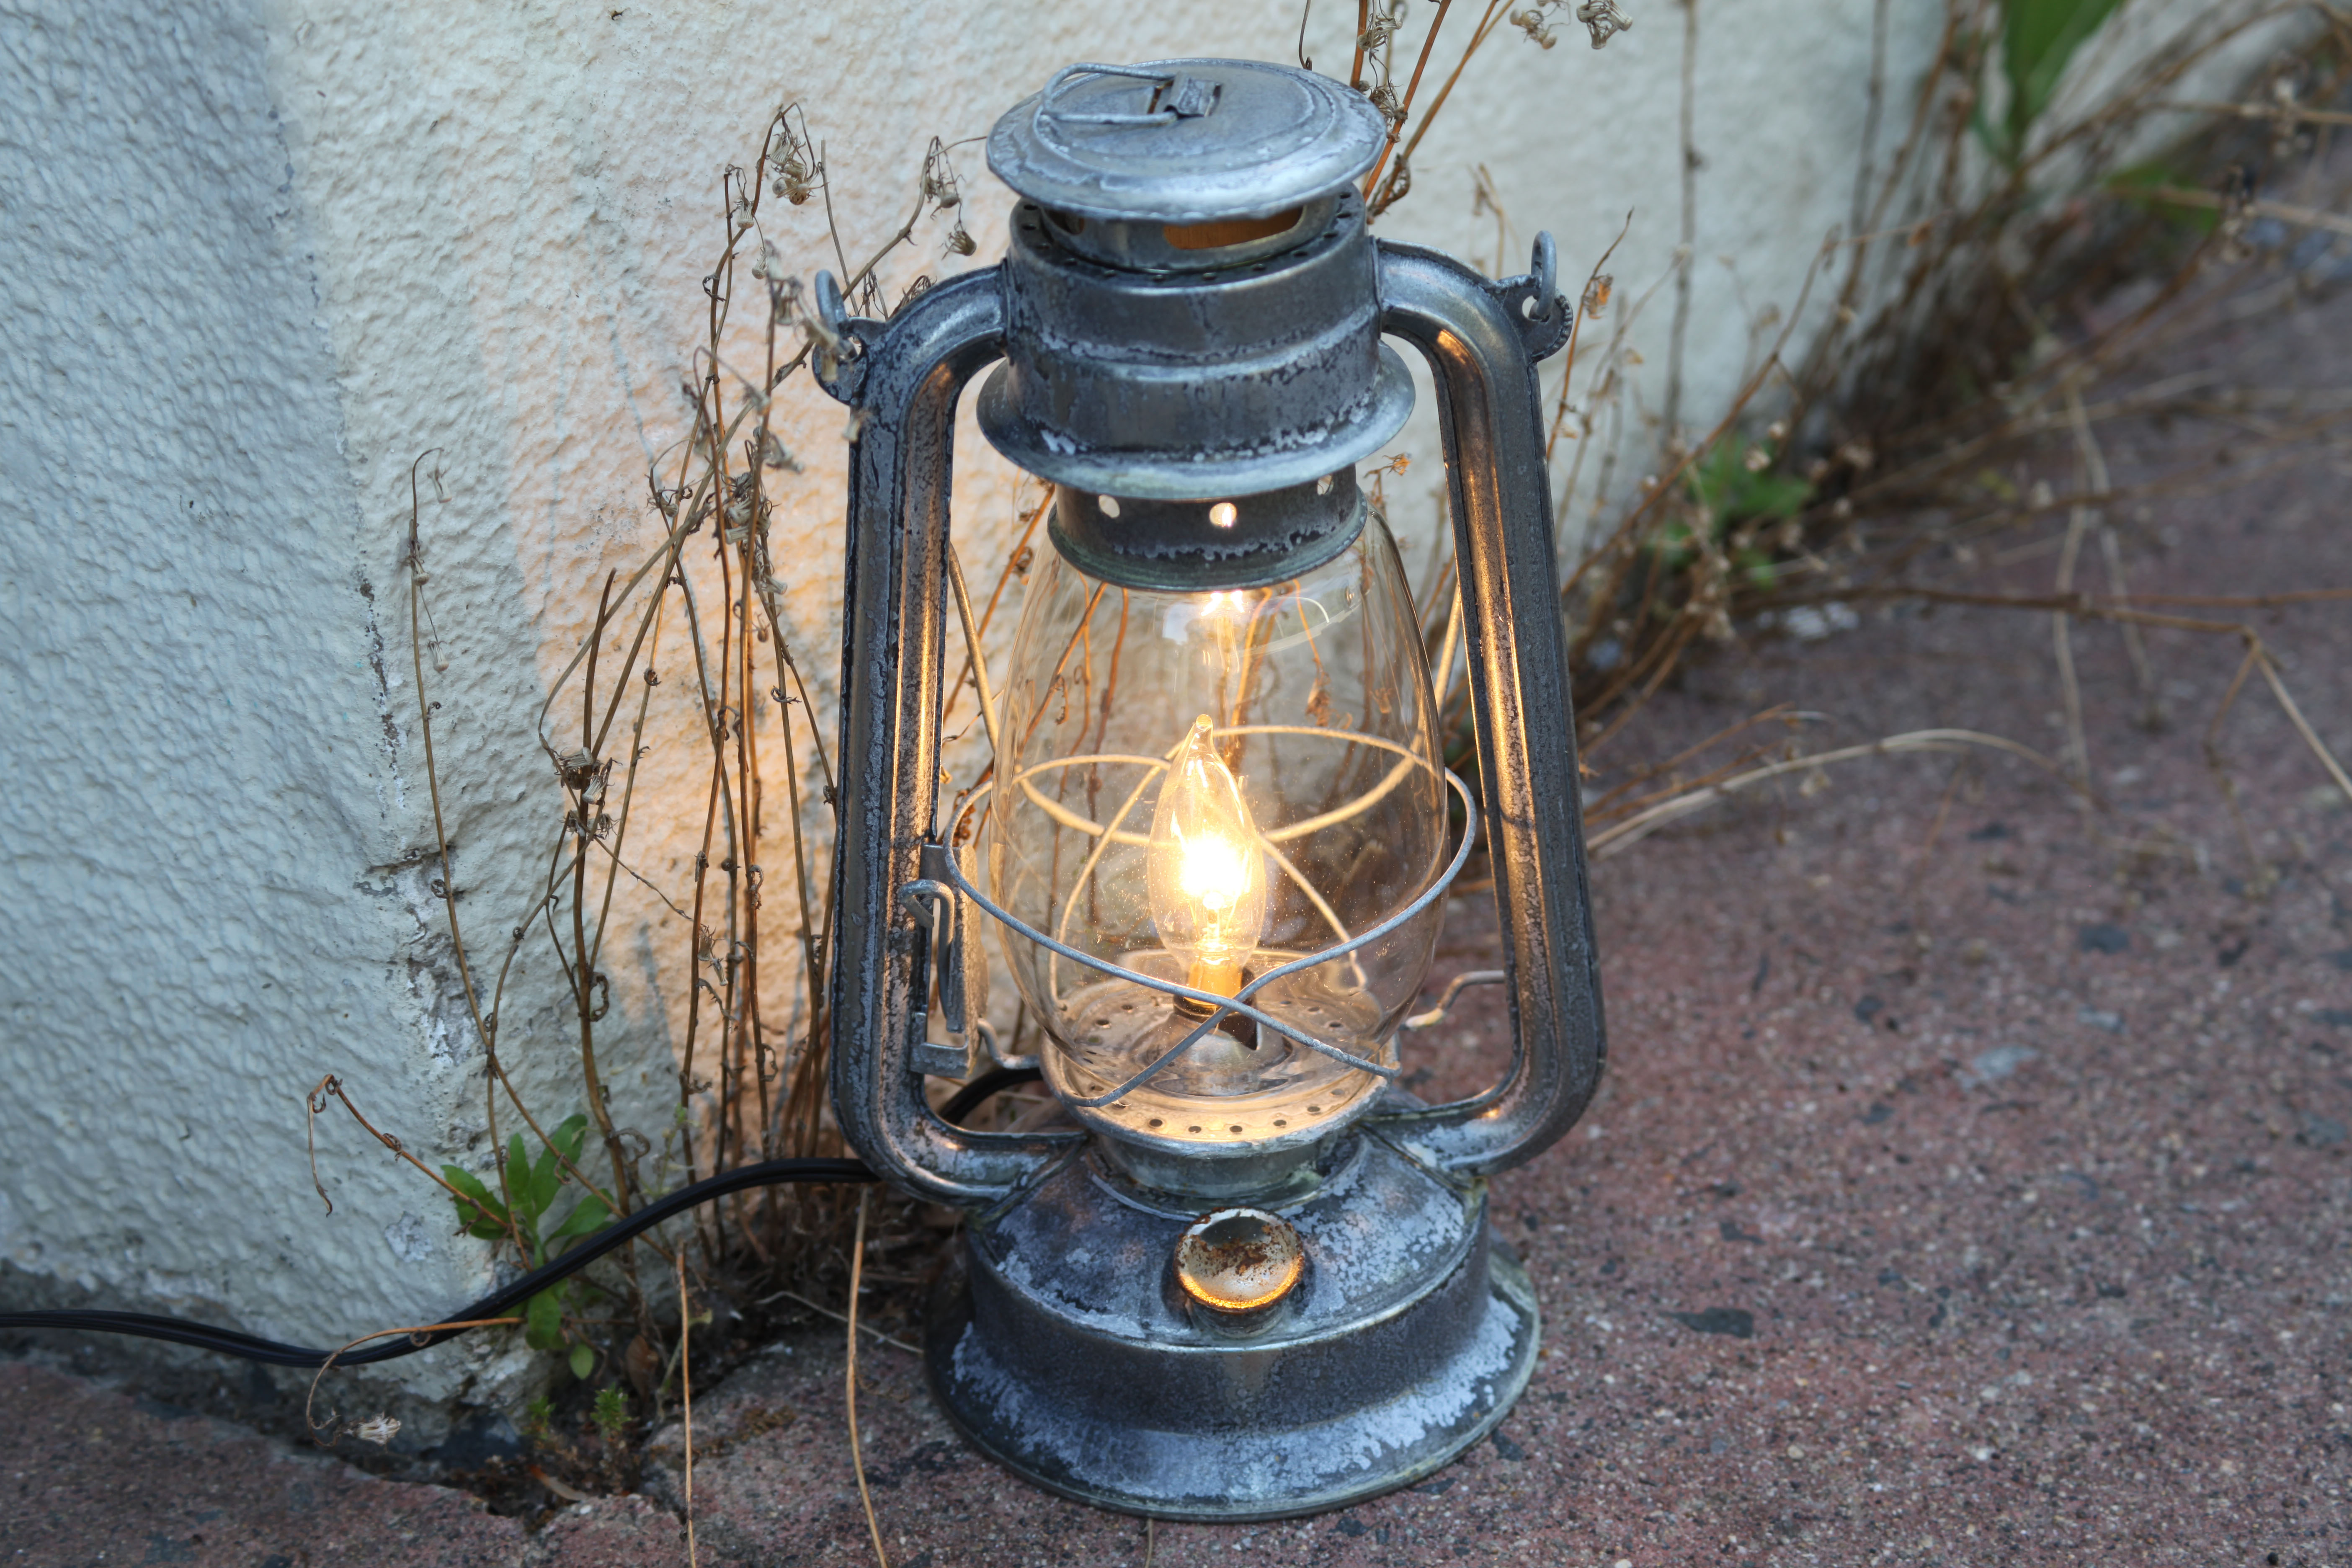 Electric Lantern Table Lamp Corroded Metal Antiqued Hurricane Night Light Rustic